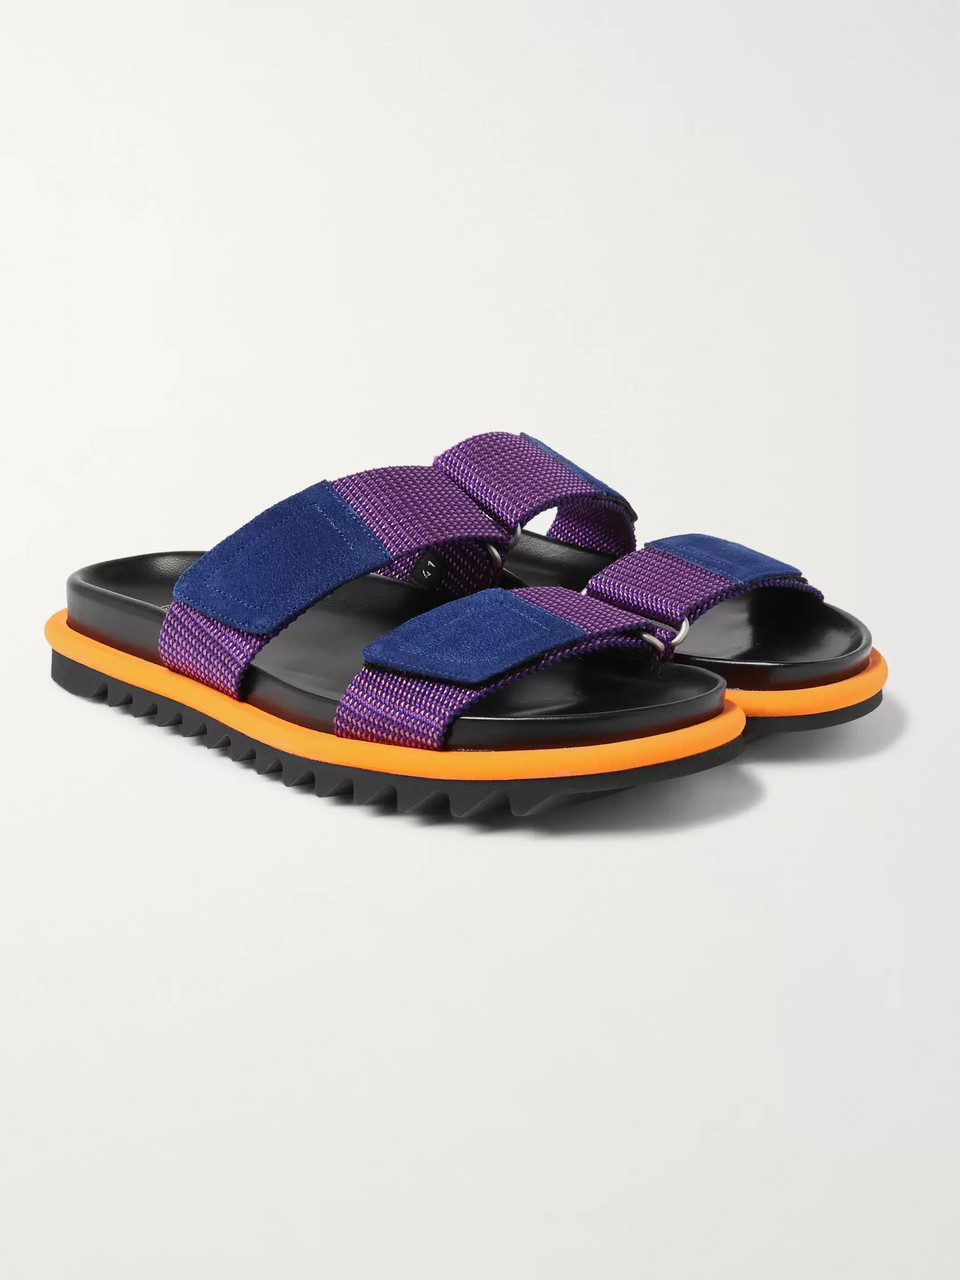 Dries Van Noten Suede-Trimmed Webbing Sandals